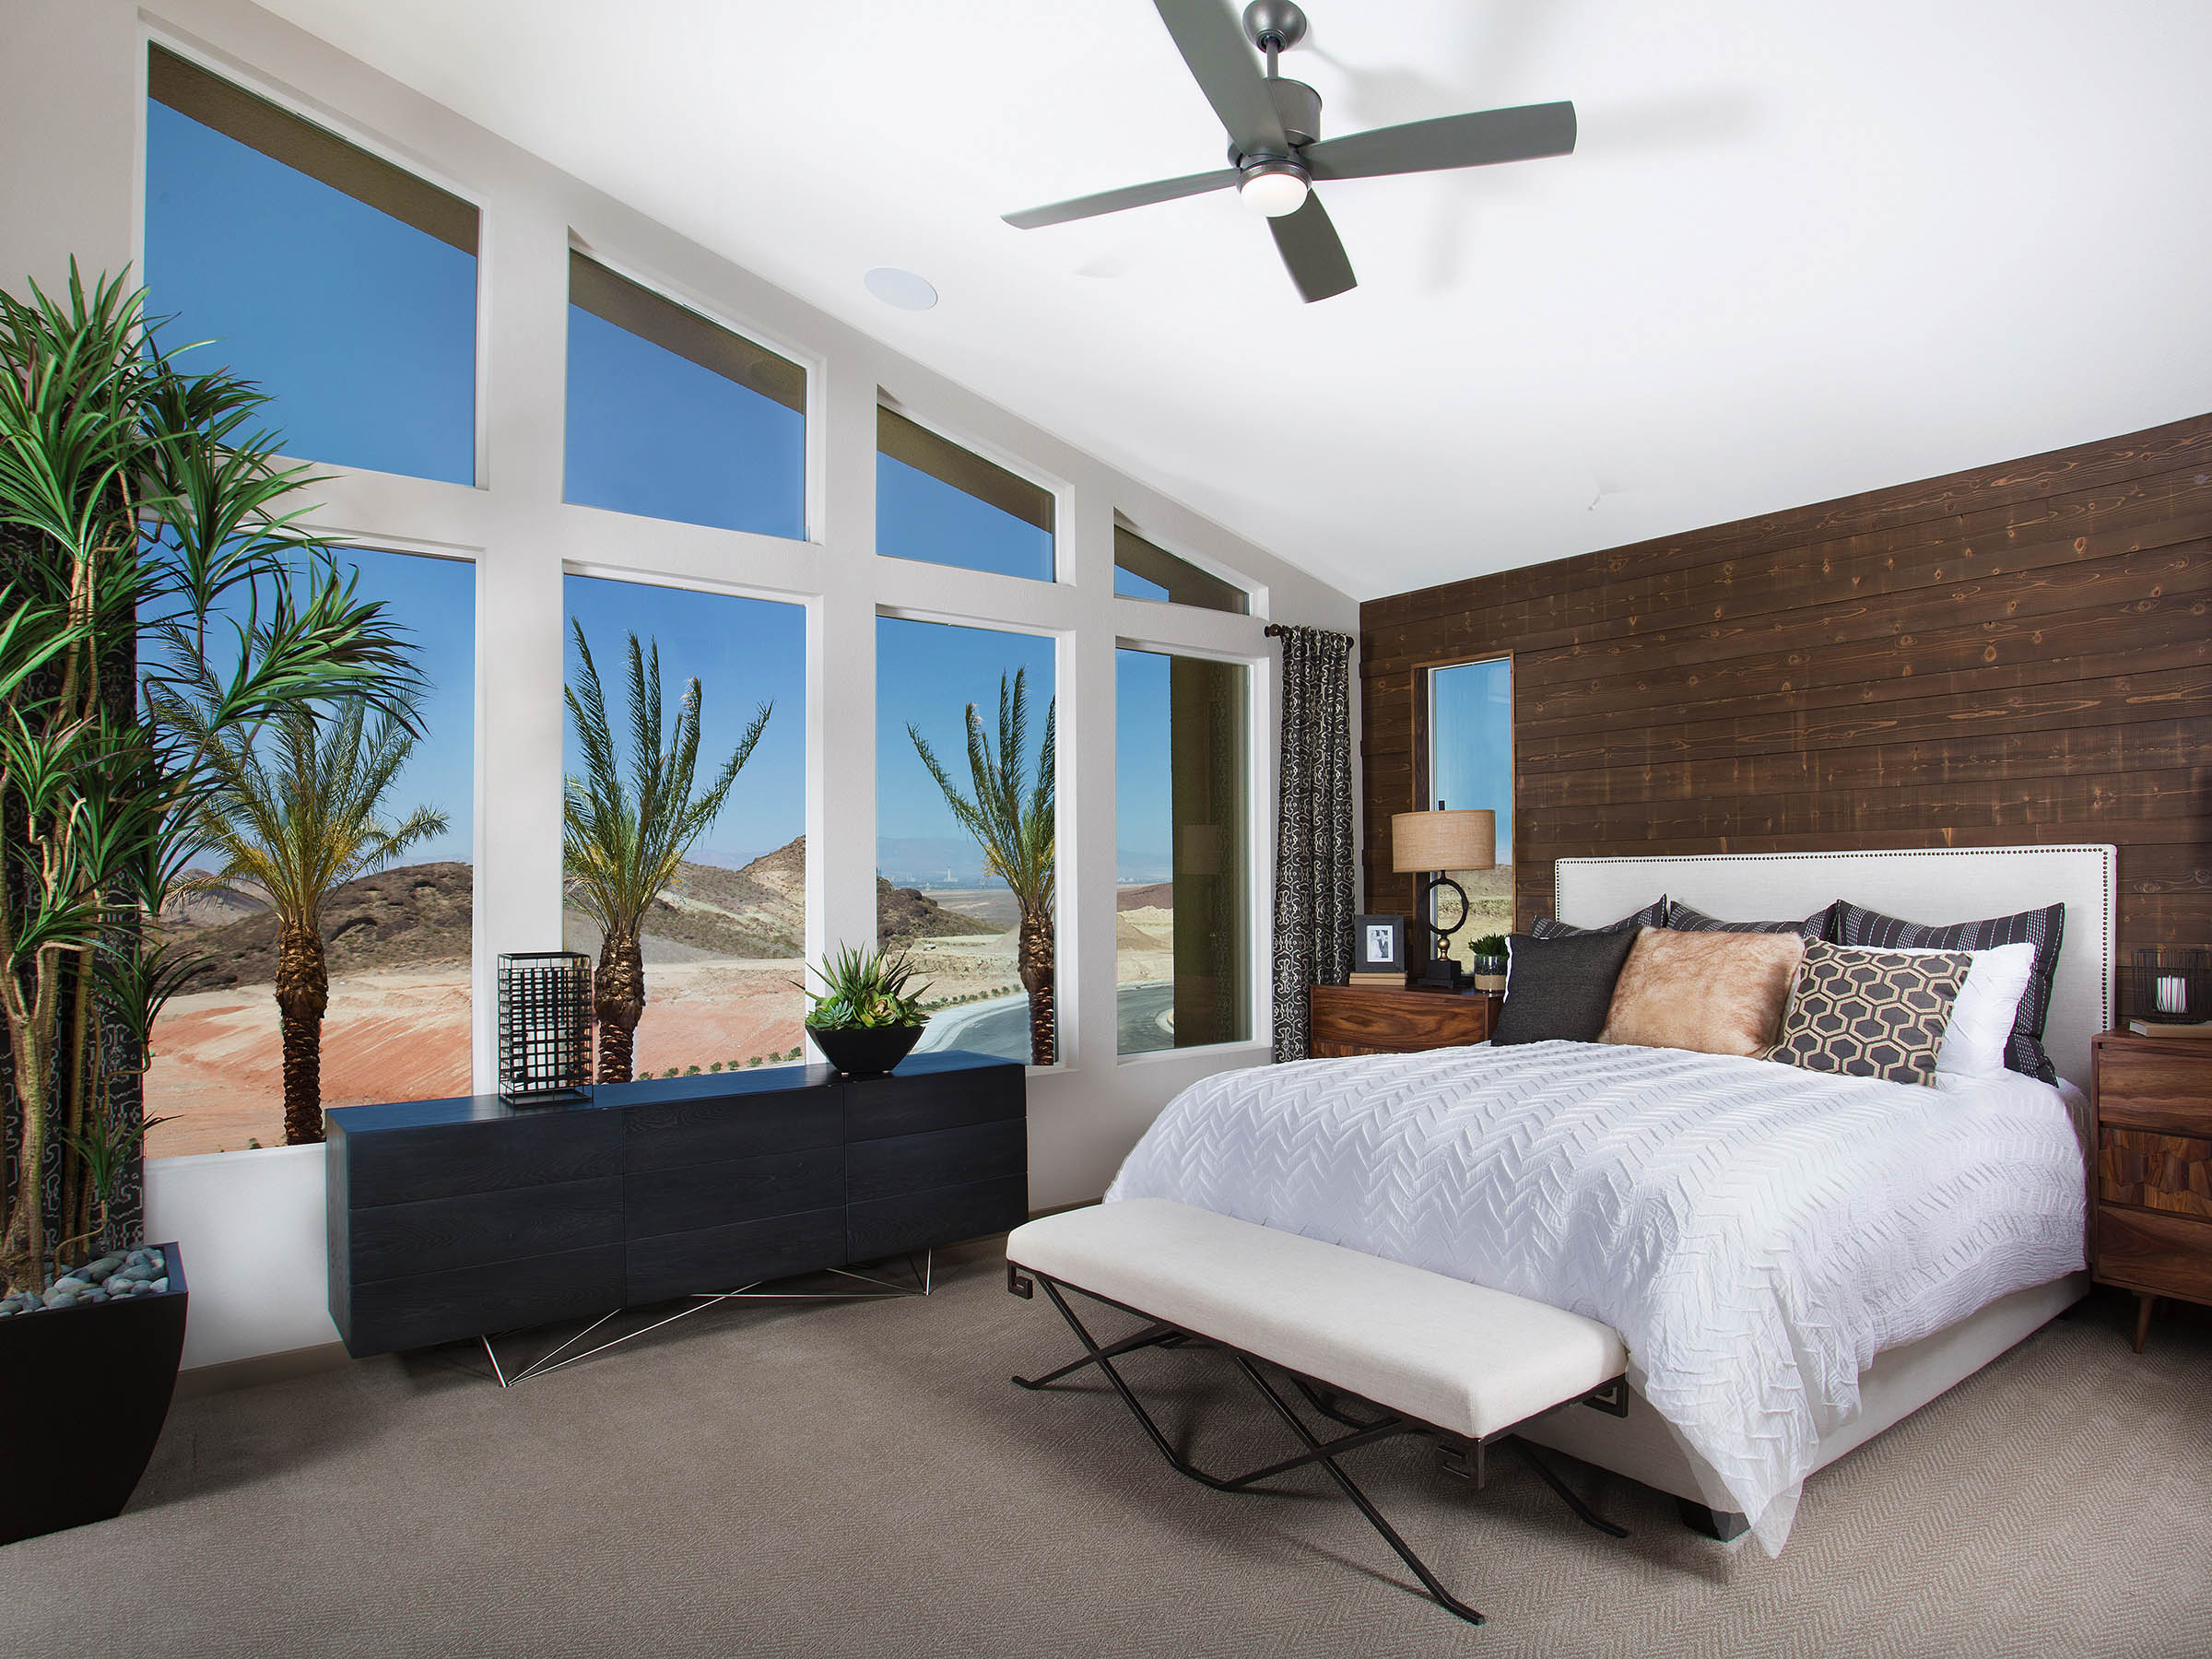 Lake-Las-Vegas-New-Homes-For-Sale-The-Peaks-Master-Bedroom-Plan-3